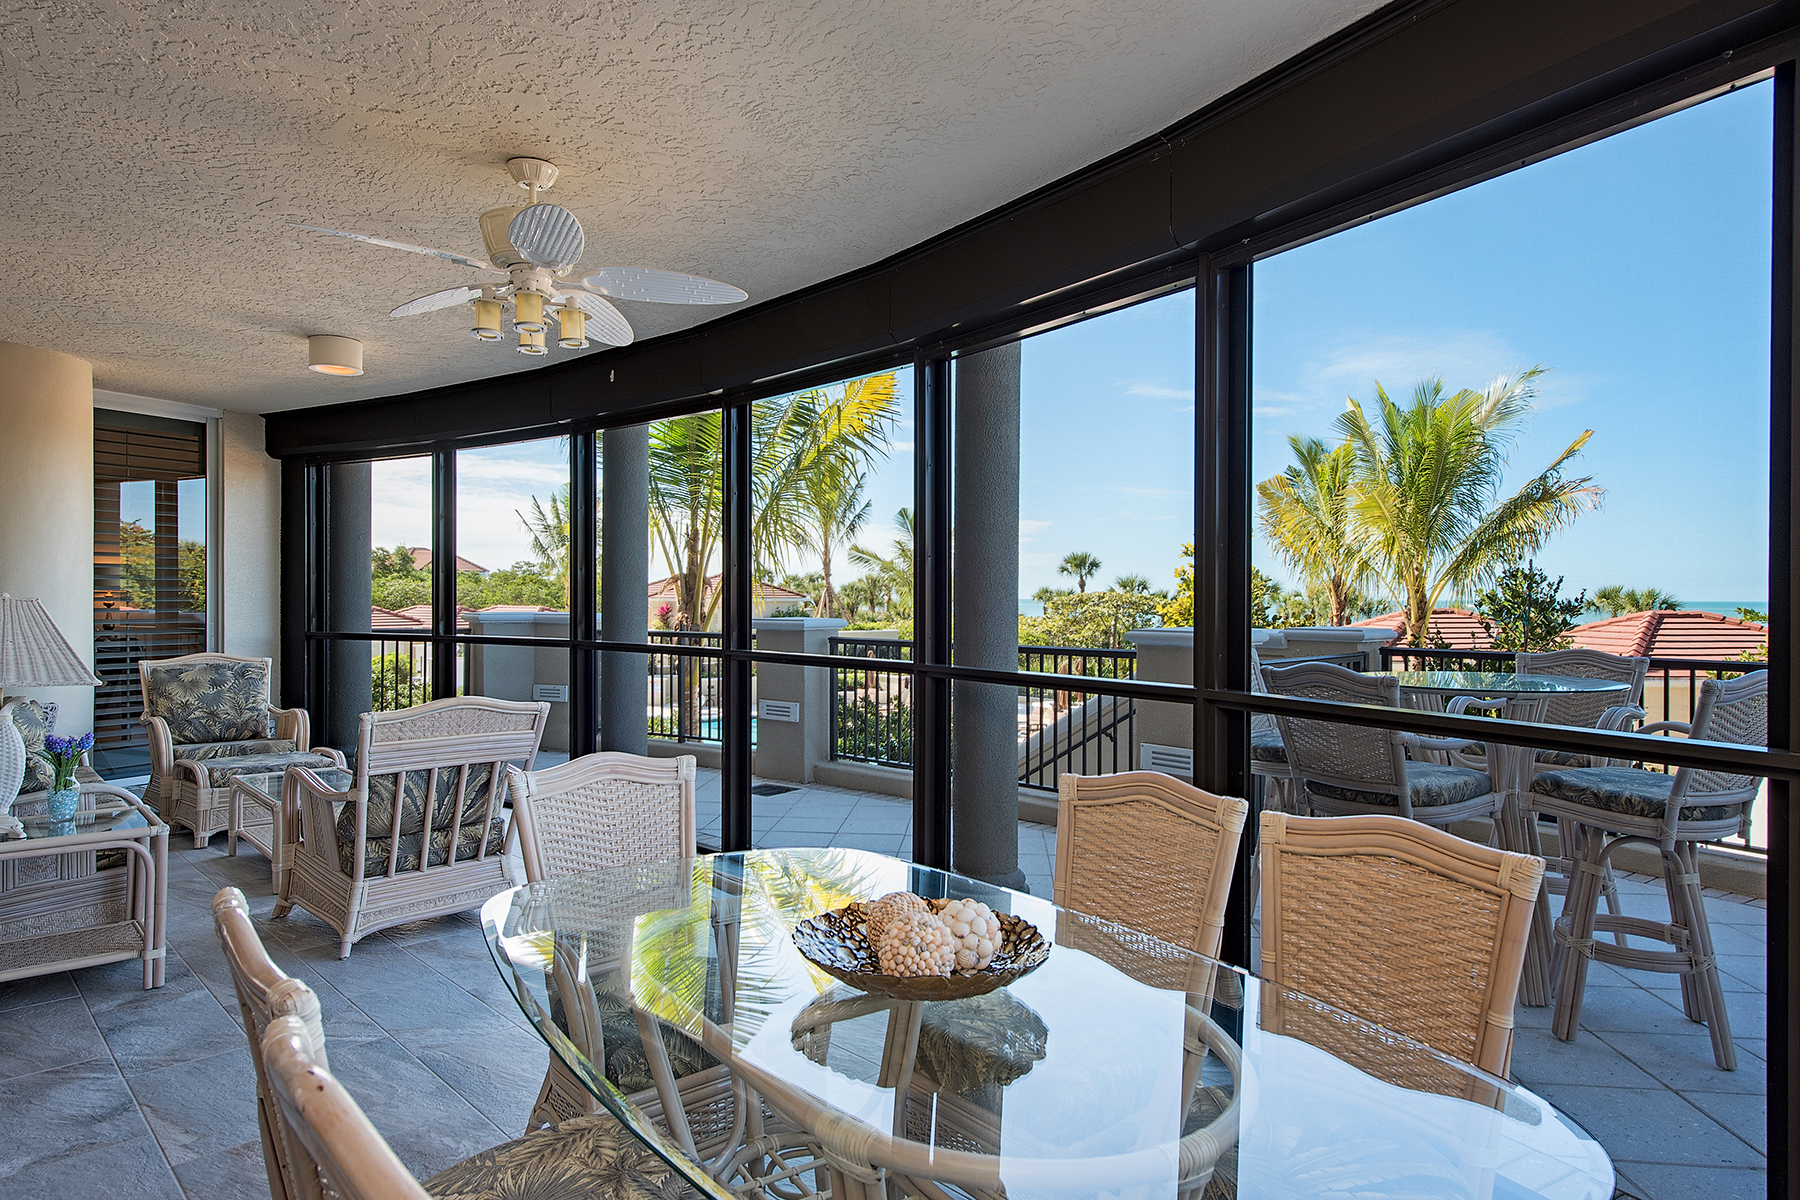 Condominium for Sale at PELICAN BAY - REMINGTON AT BAY COLONY 8665 Bay Colony Dr 204, Naples, Florida 34108 United States